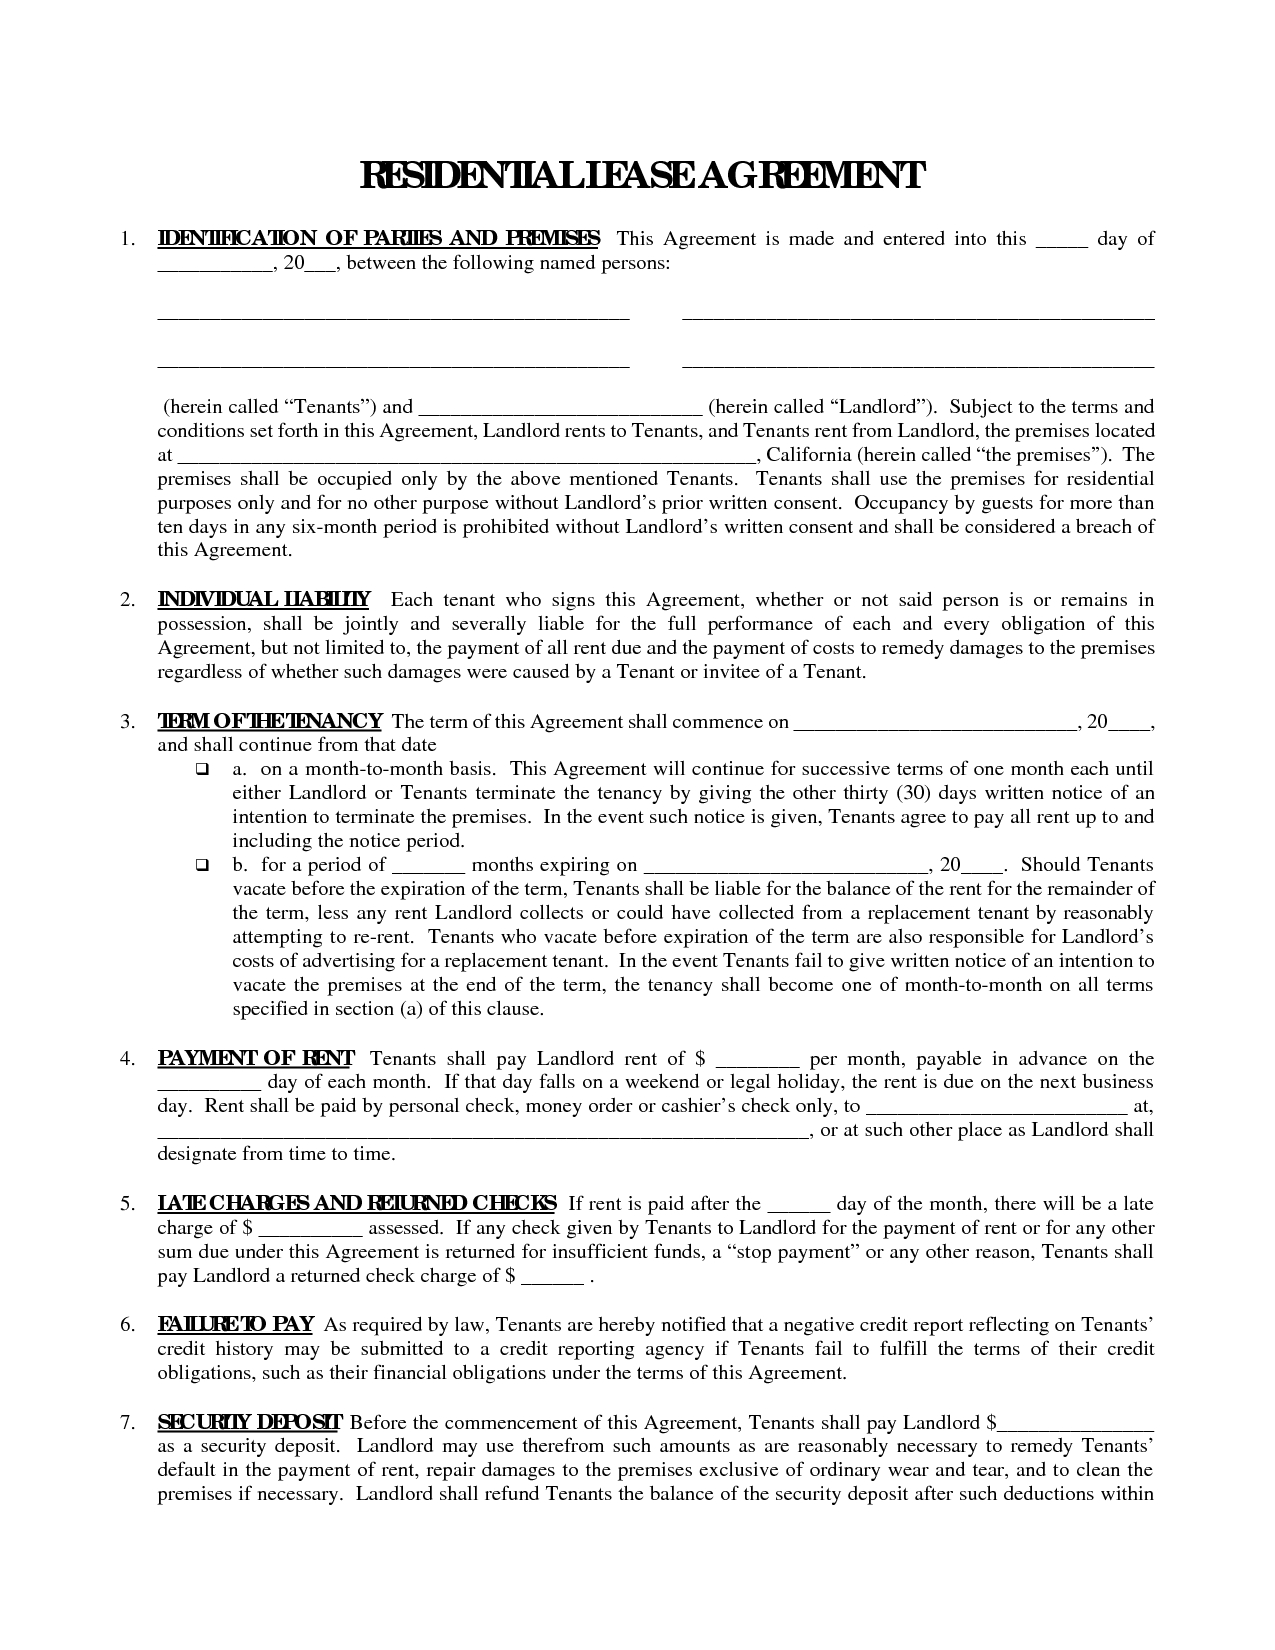 Printable Residential Free House Lease Agreement   Residential Lease - Free Printable Lease